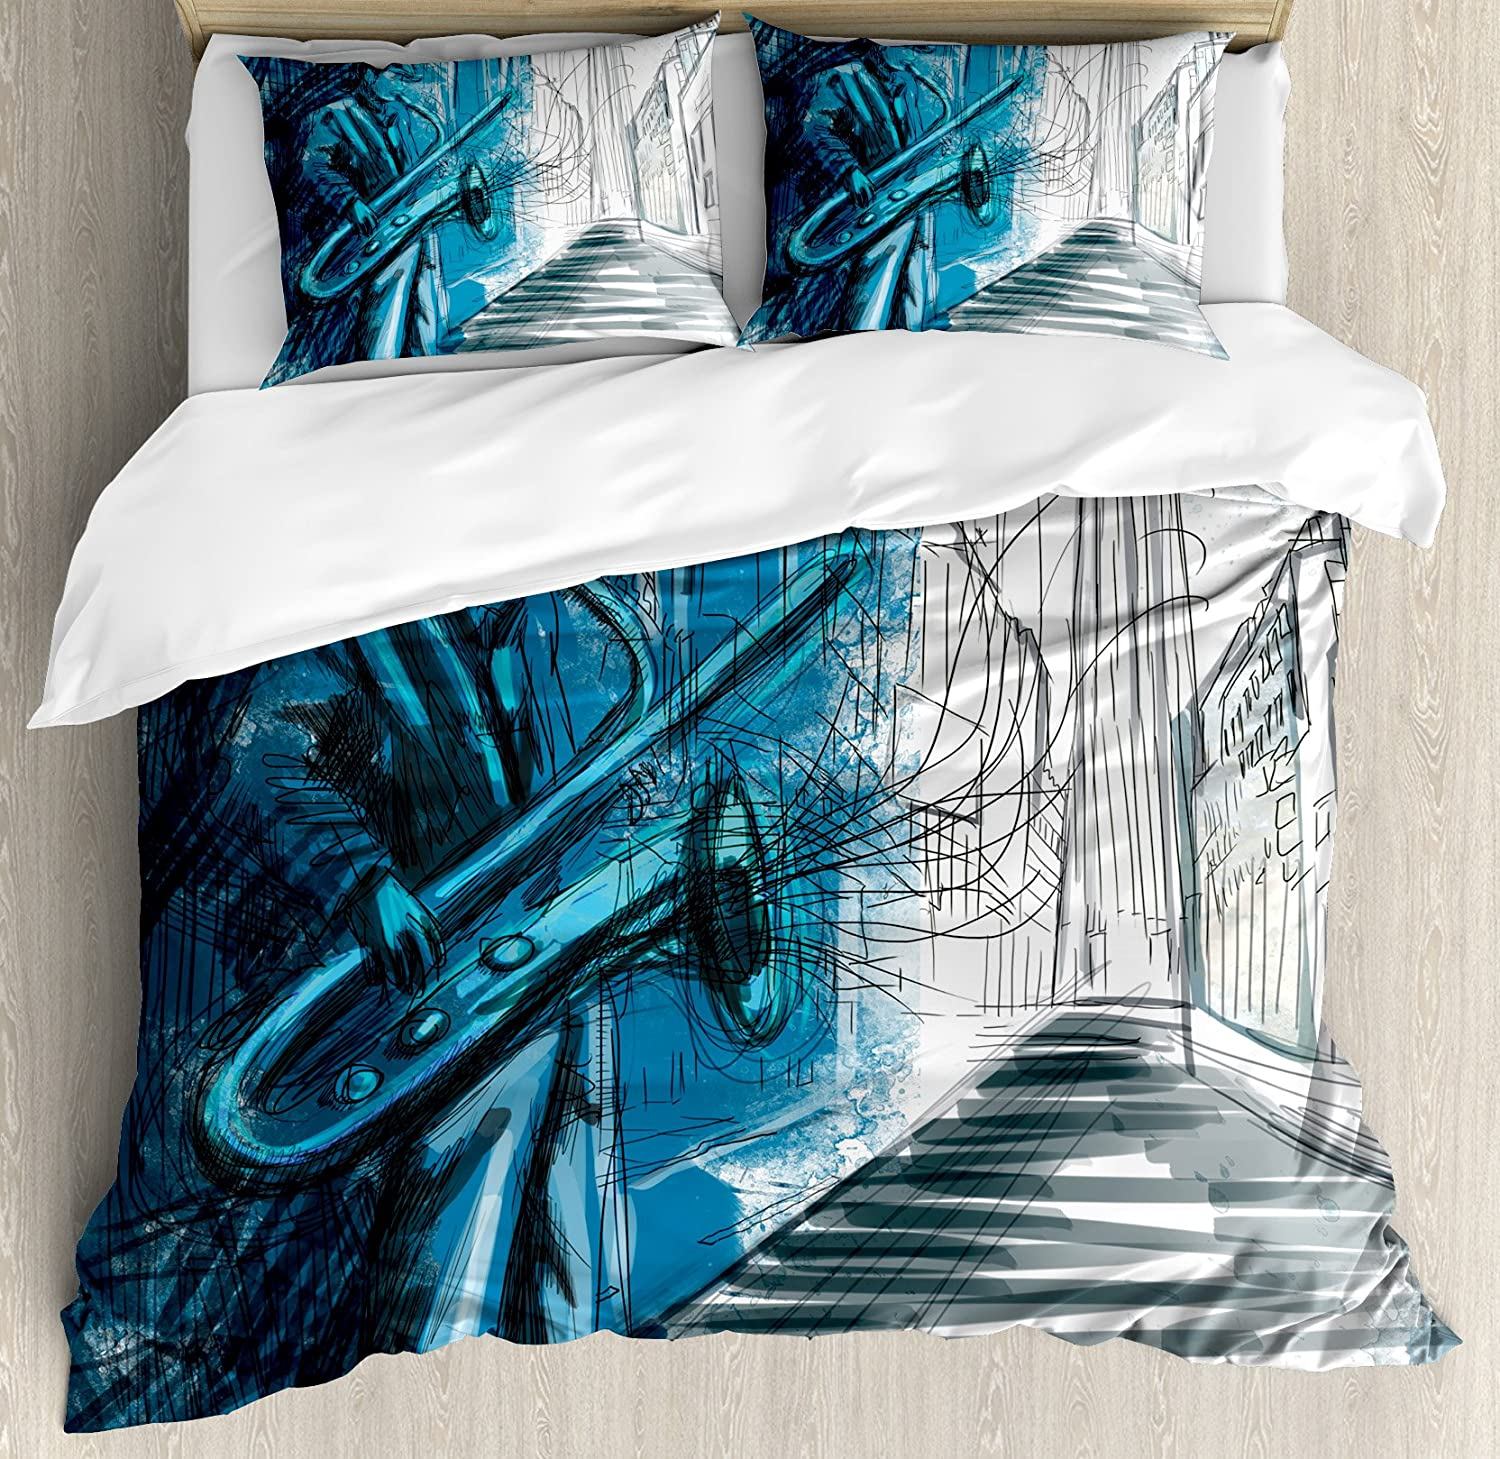 Ambesonne Music Duvet Cover Set Queen Size, Saxophone Man Playing Solo in Street at Night Vibes Grunge Design Print, Decorative 3 Piece Bedding Set with 2 Pillow Shams, Dark bluee Black White